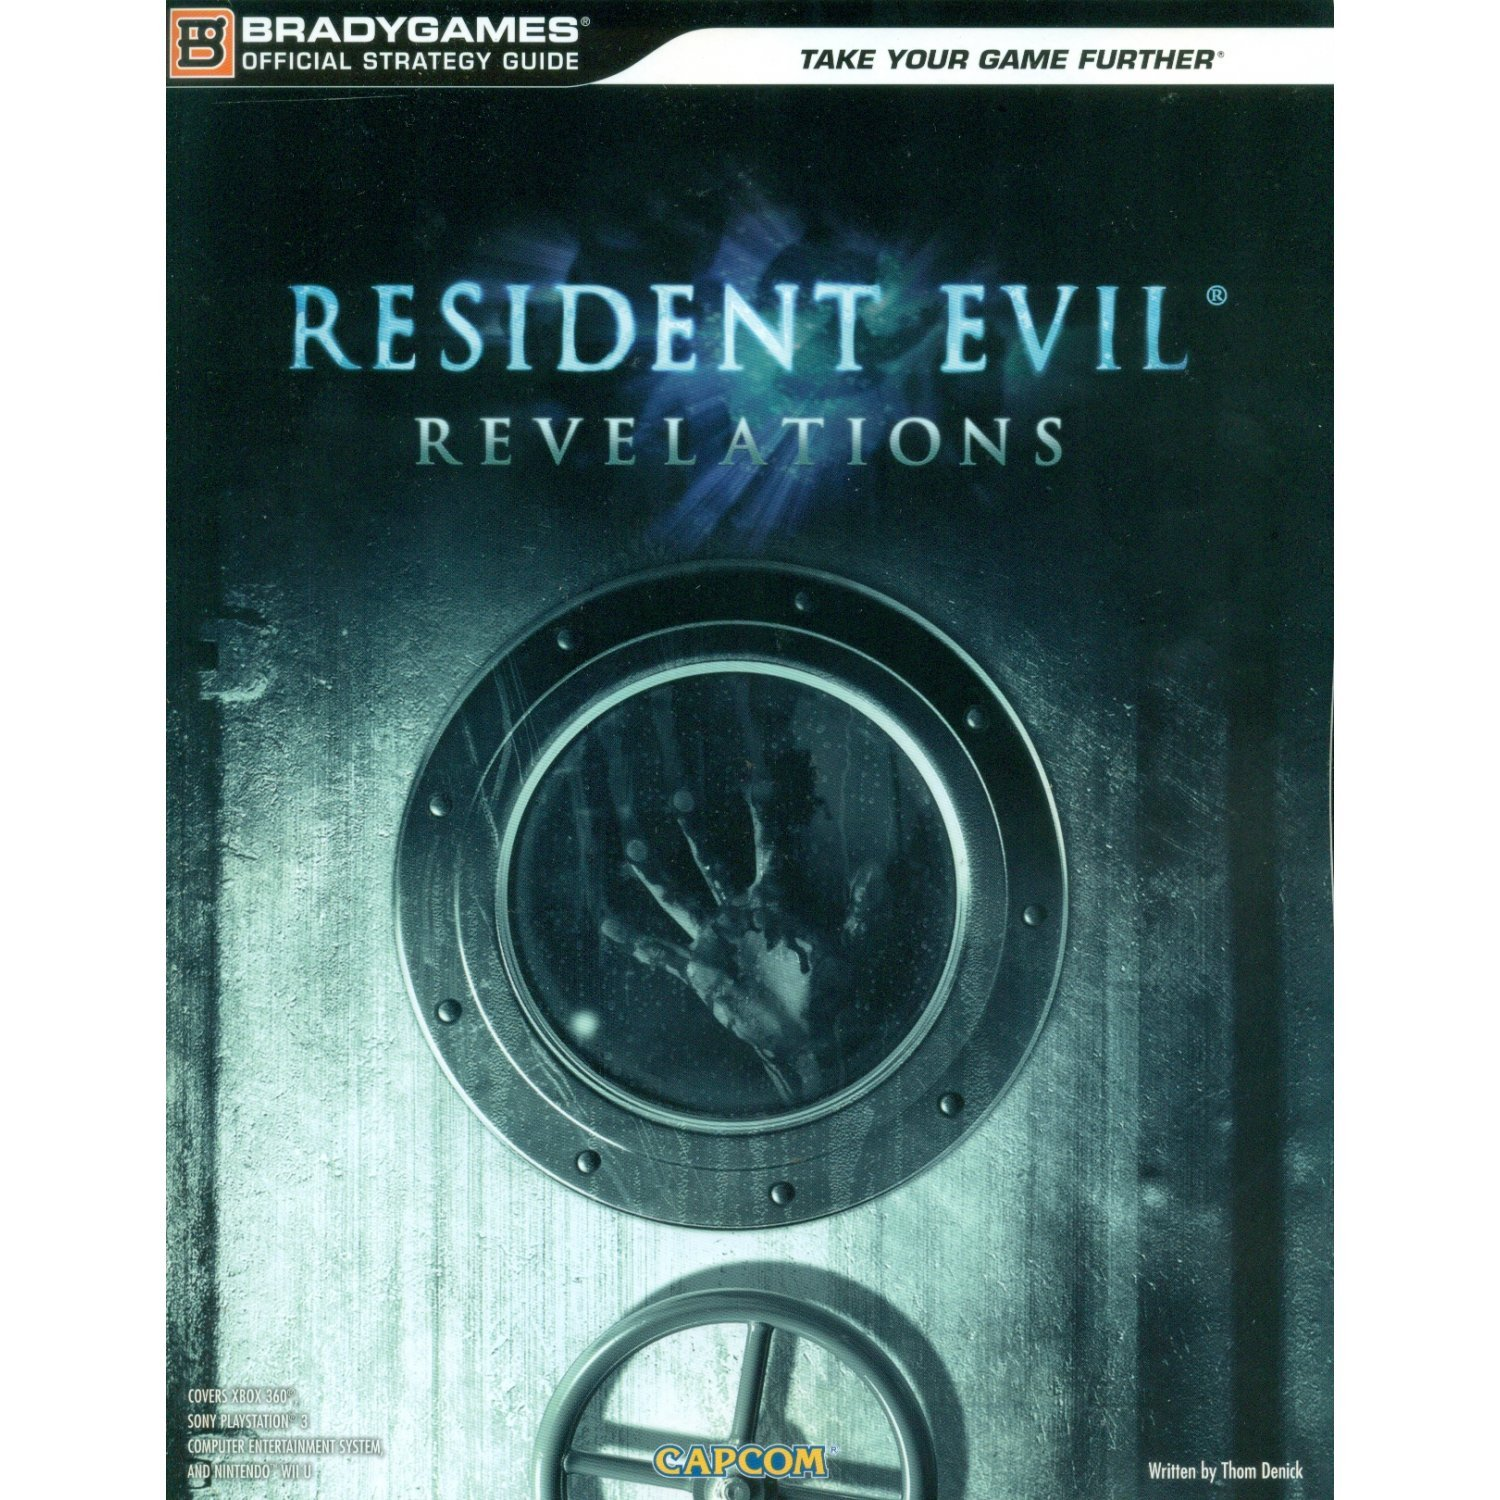 Resident Evil Revelations Official Strategy Guide